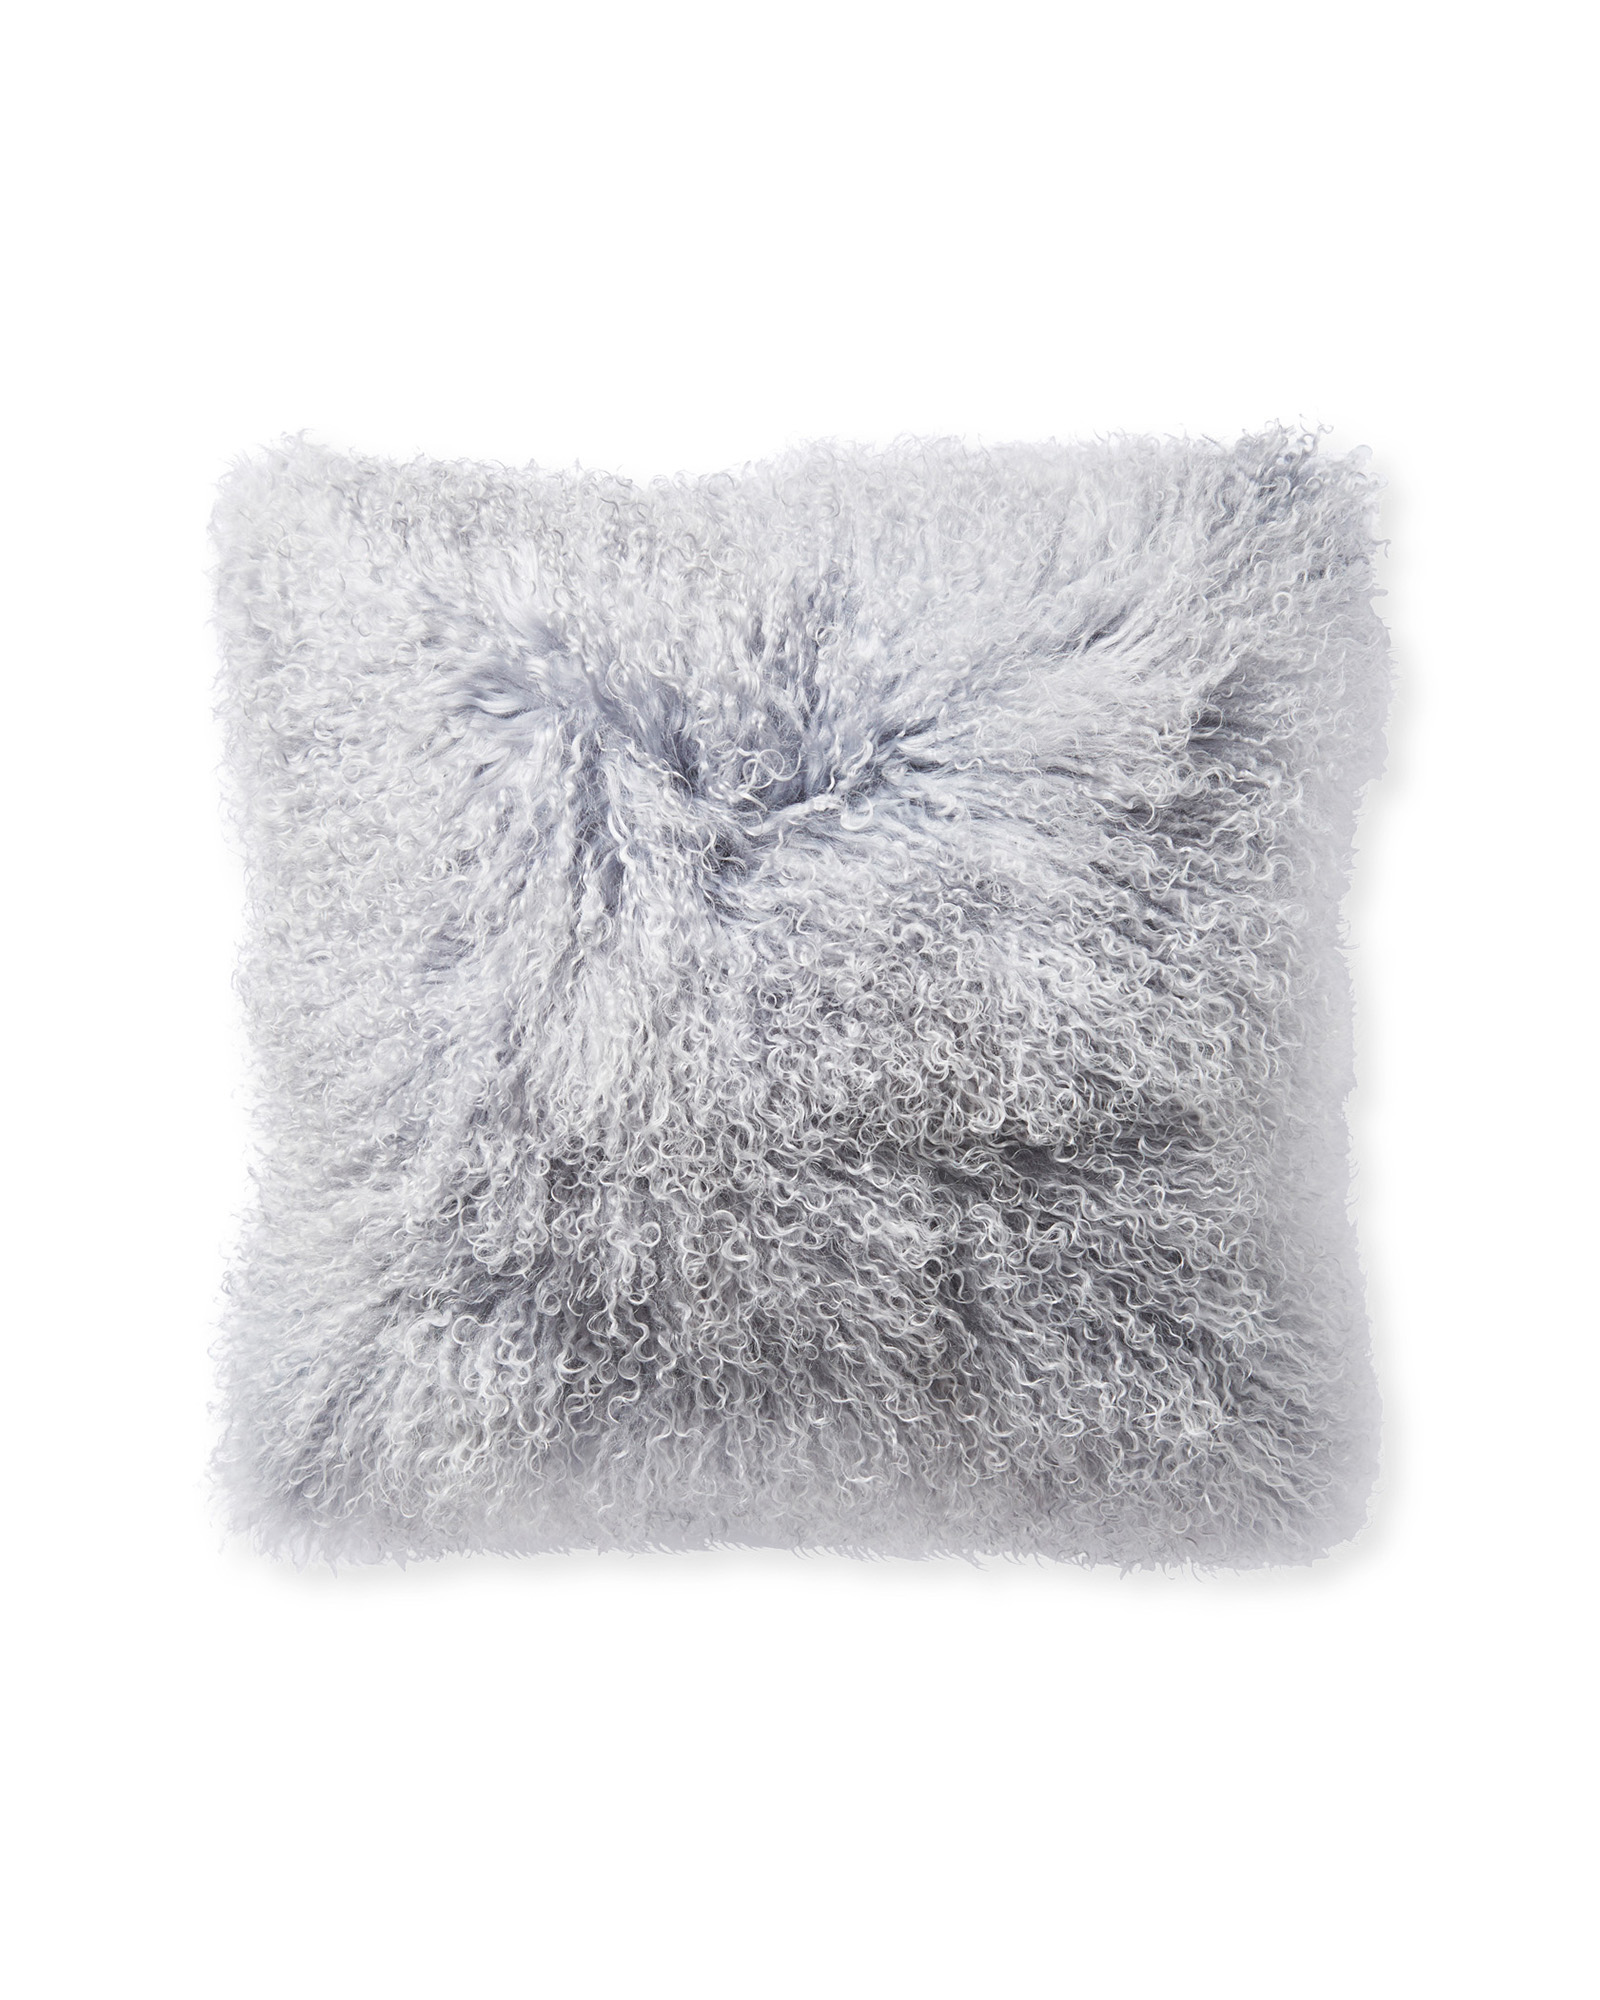 Silverwood Pillow Cover, Silver